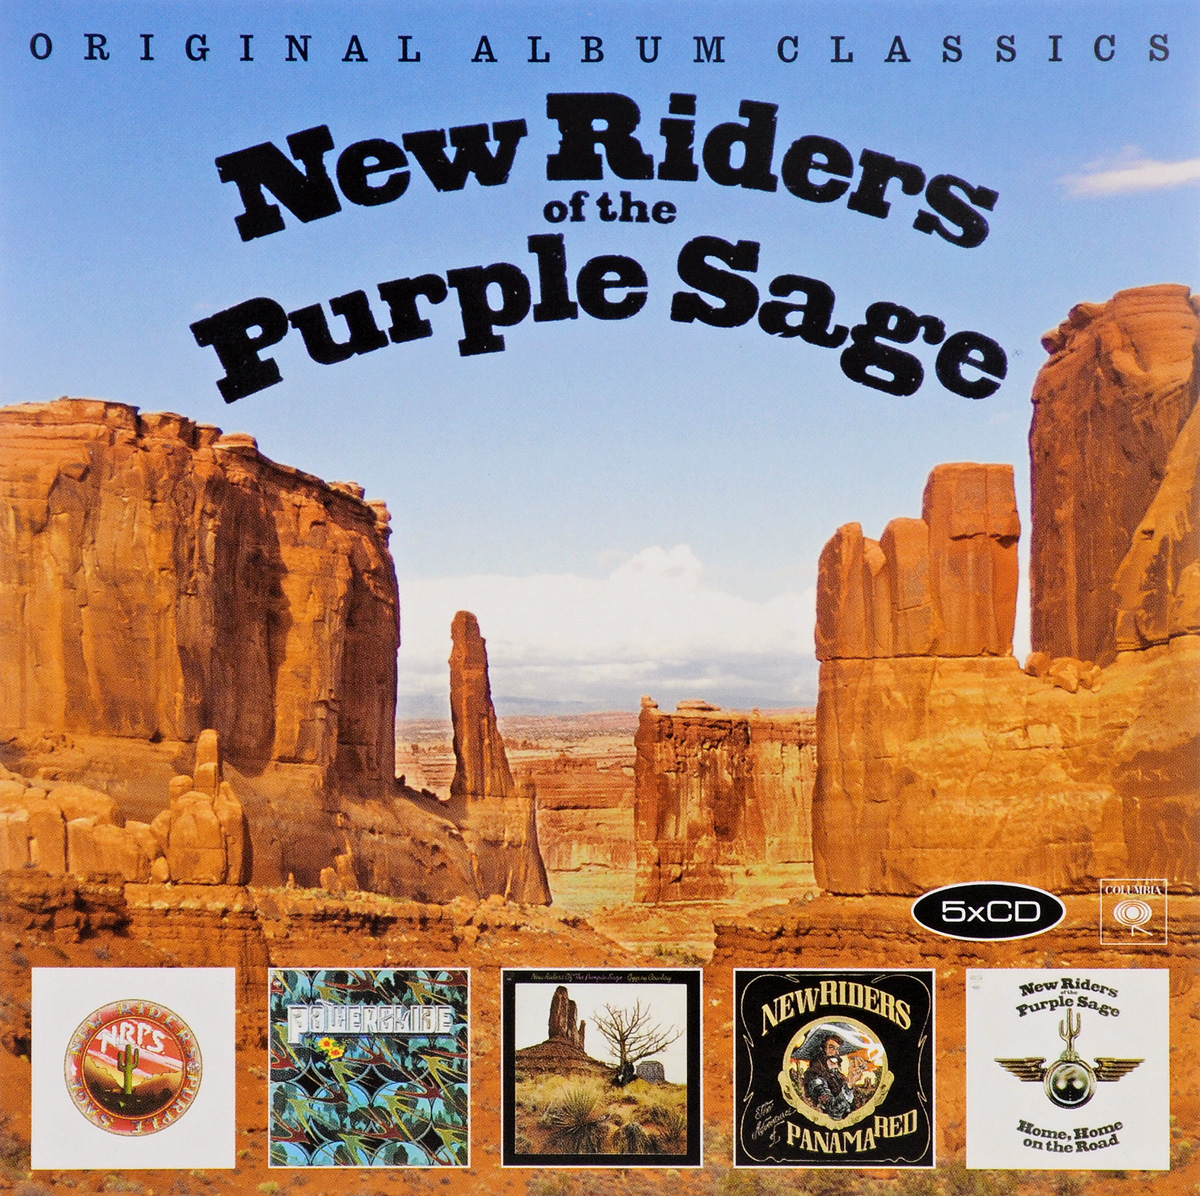 New Riders Of The Purple Sage New Riders Of The Purple Sage. Original Album Classics (New Riders Of The Purple Sage / Powerglide / Gypsy Cowboy / The Adventures Of Panama Red / Home, Home On The Road) oxford borboniqua oxford